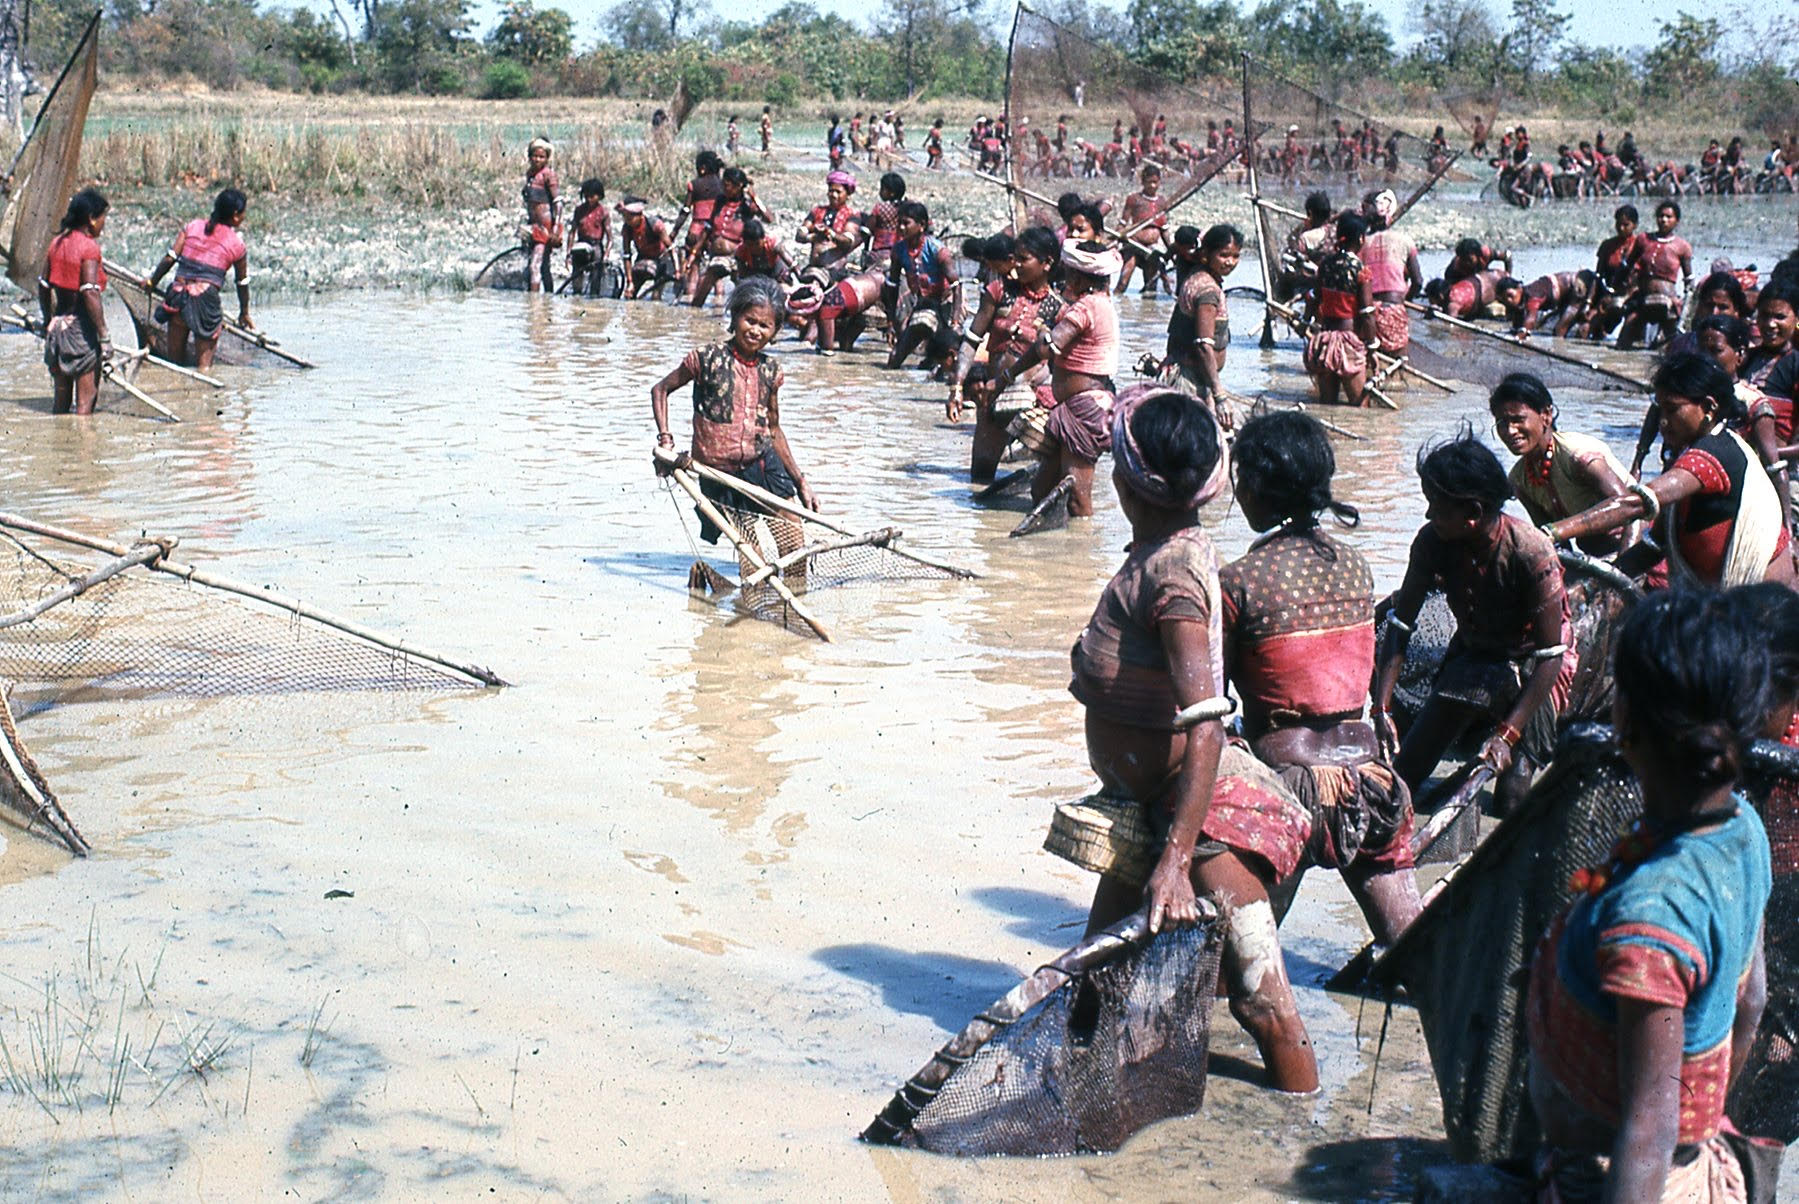 Tharu women fish in a local pond during a community fishing event.